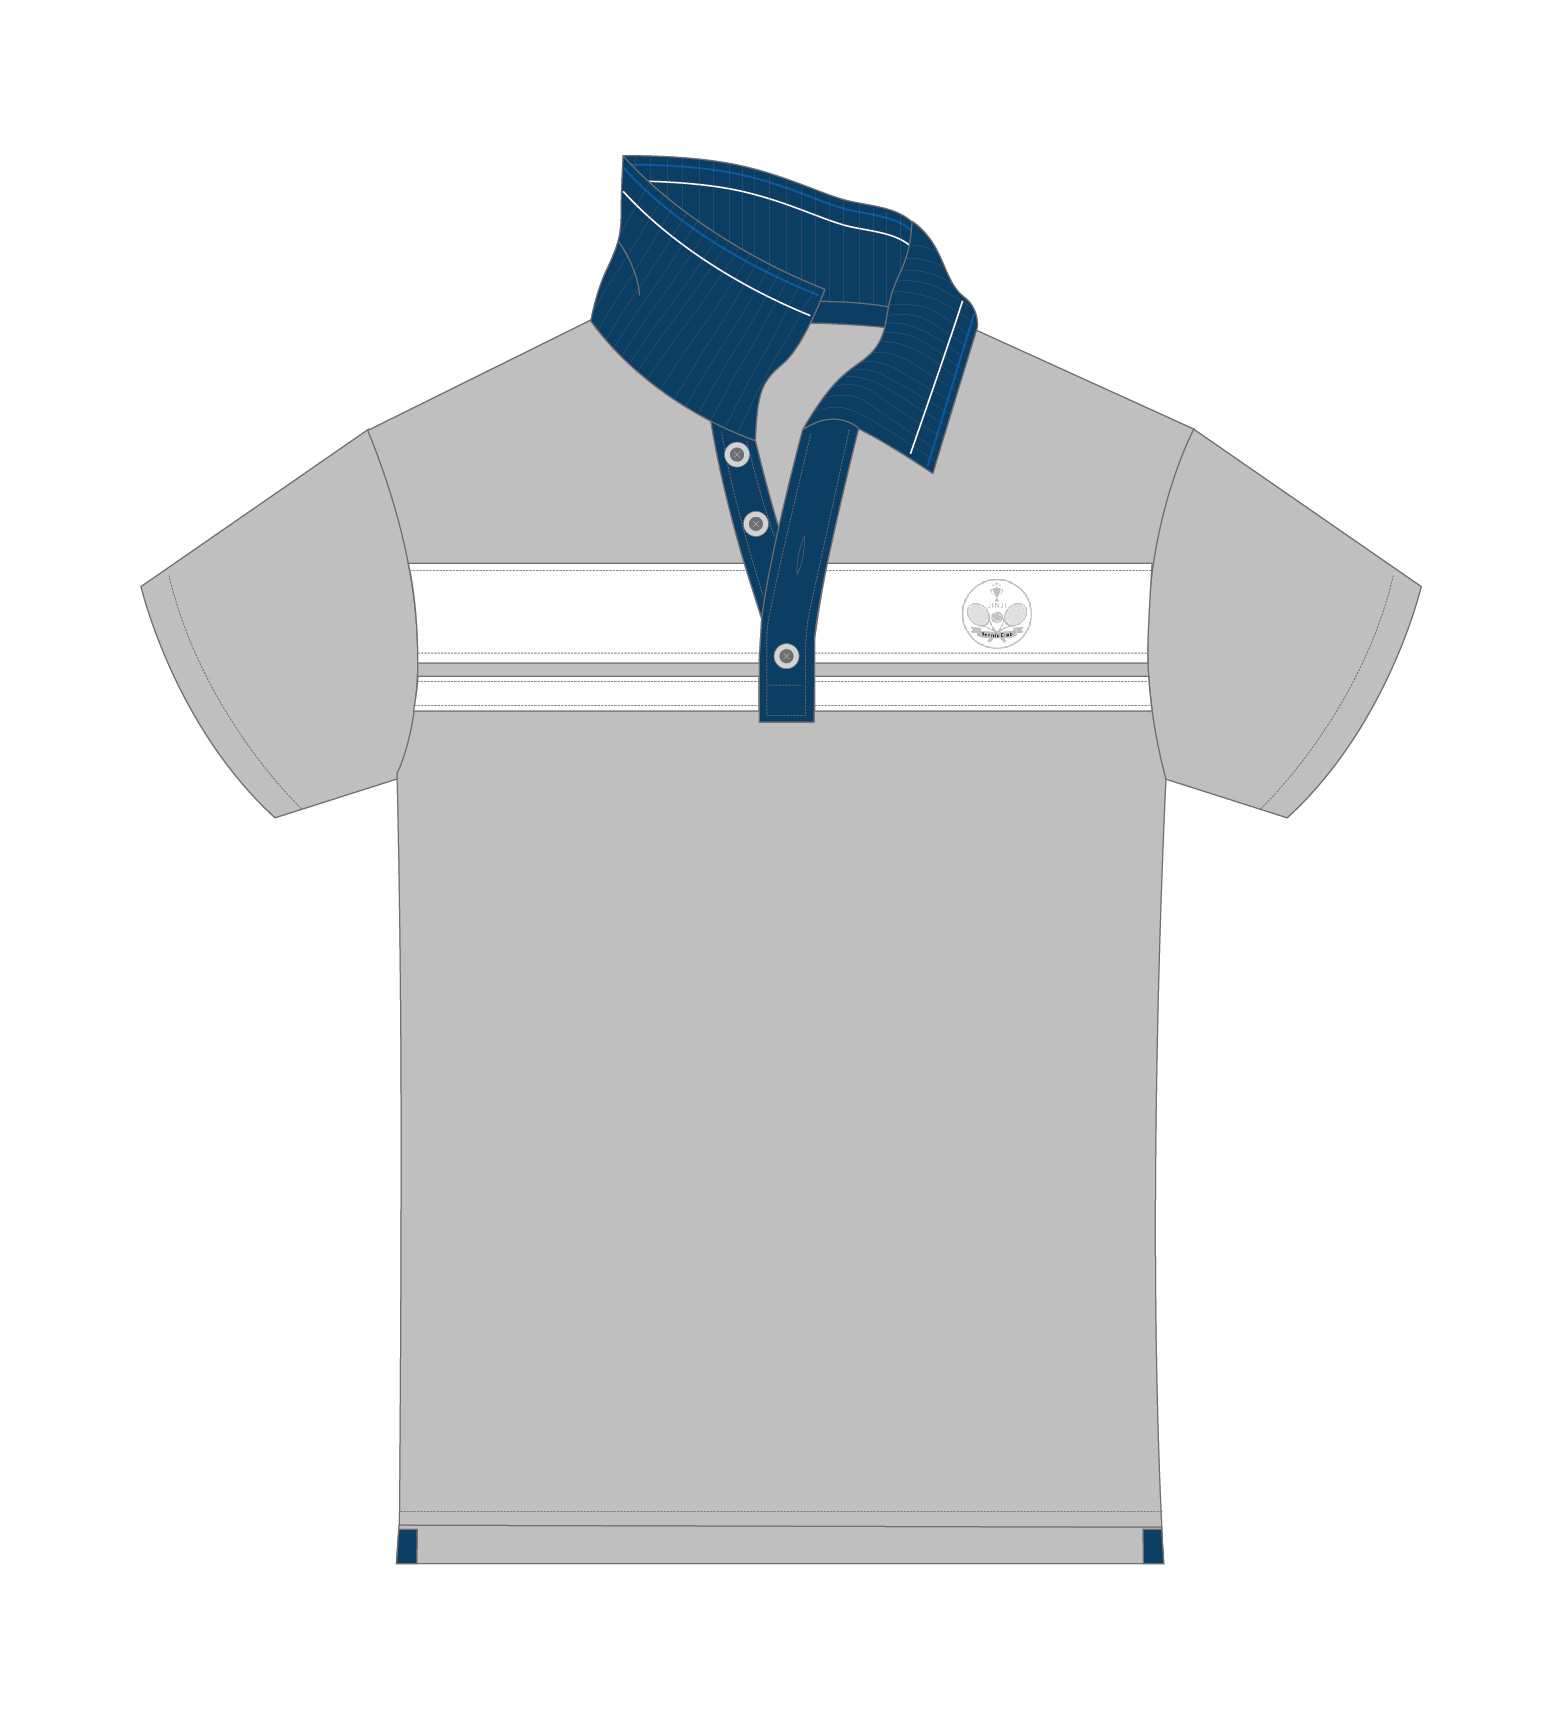 grey and whit tennis polo sketch